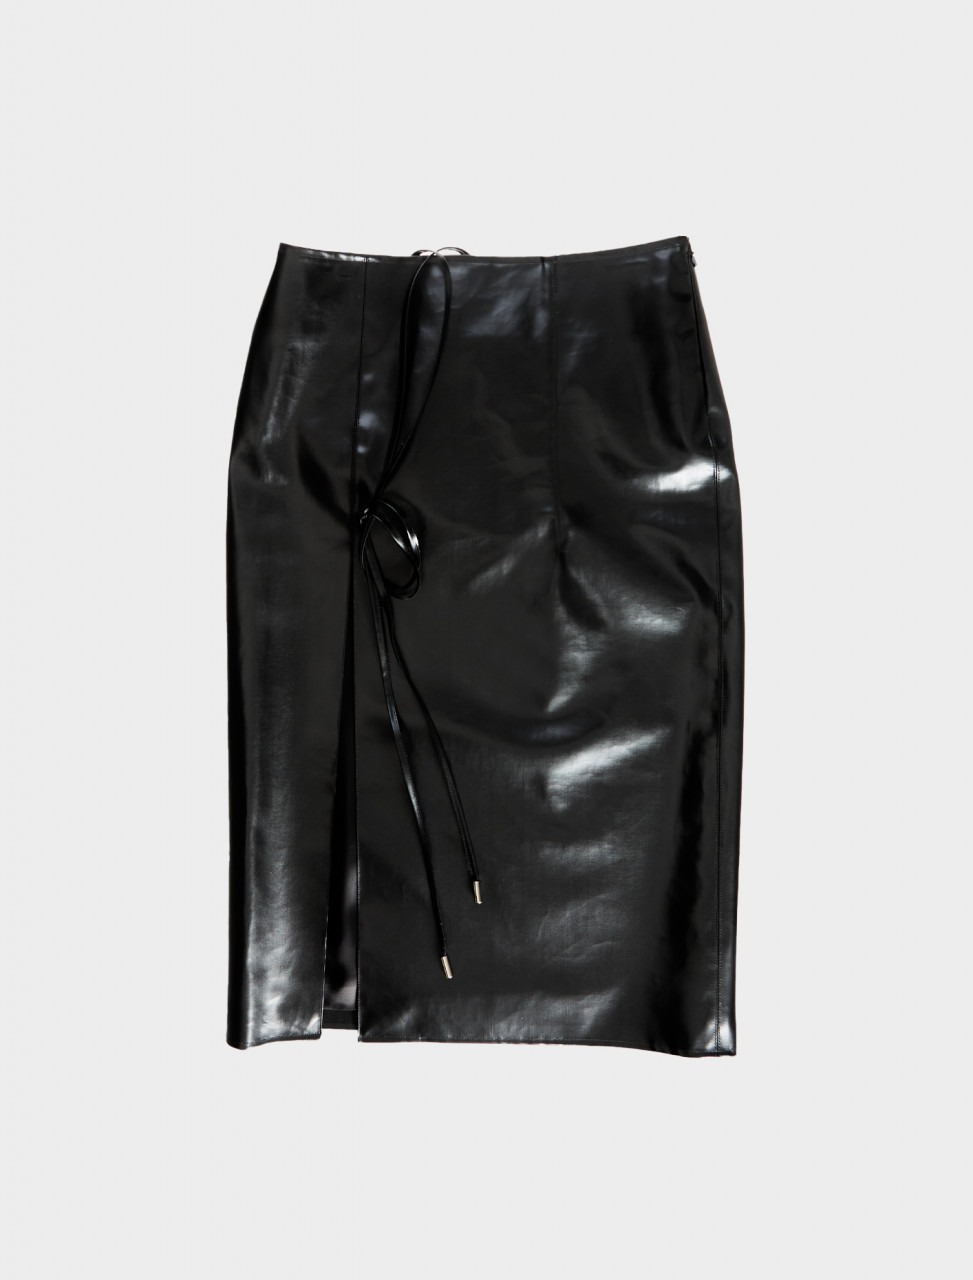 Supriya Lele Rubberised Utility Skirt in Black Front